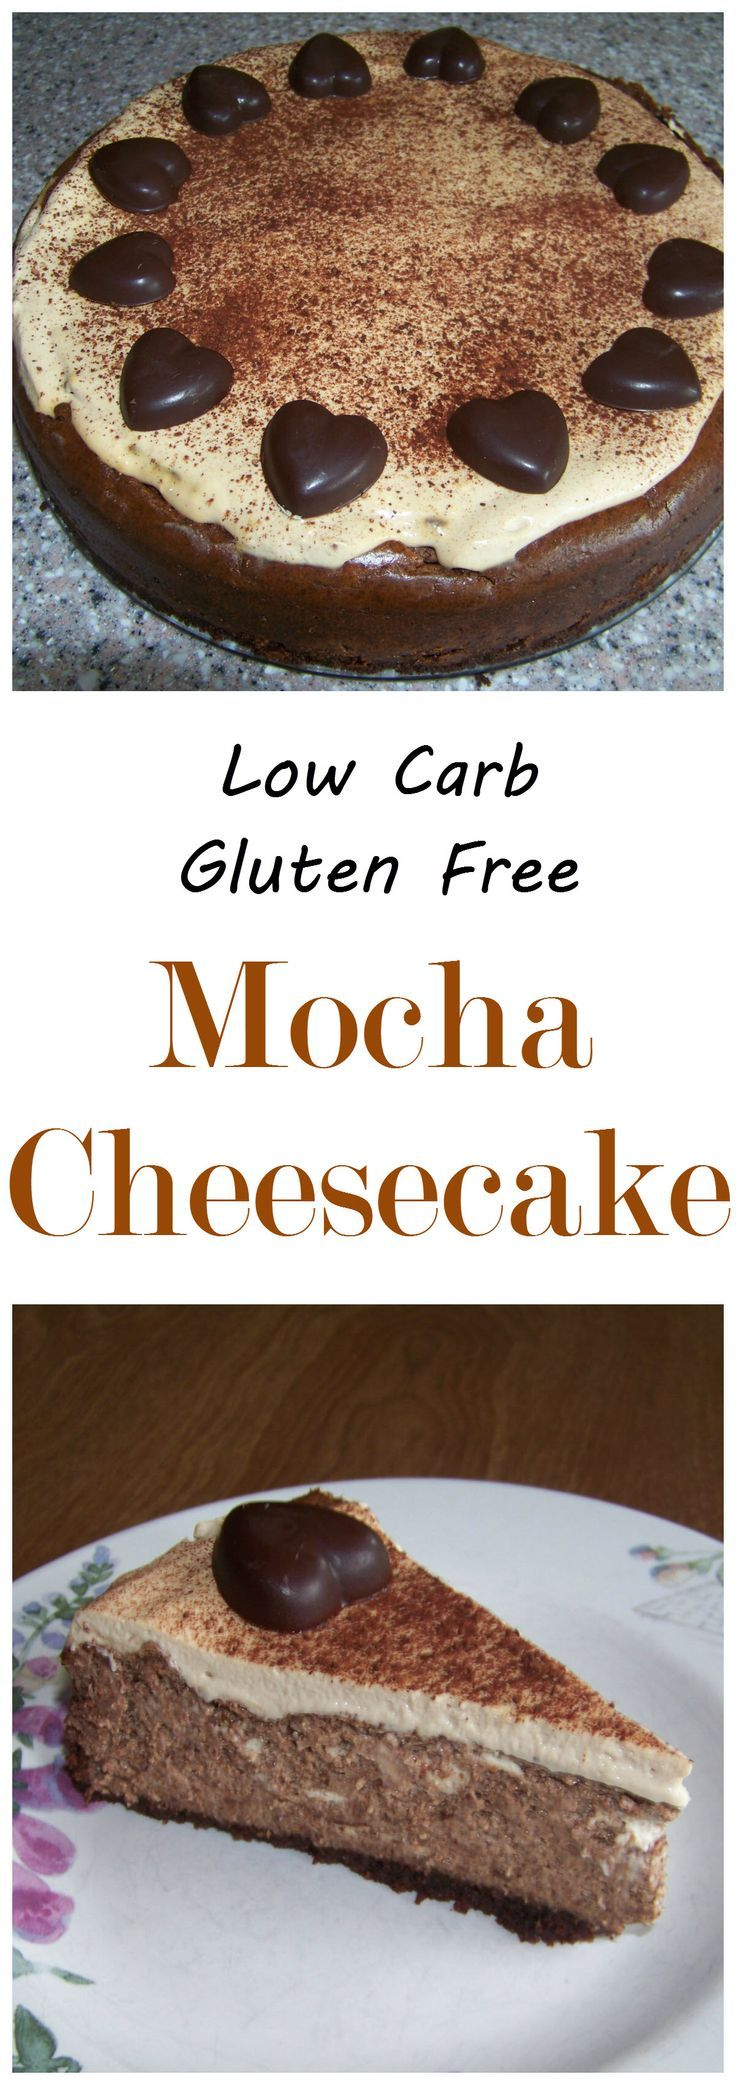 A decadent sugar free mocha cheesecake to wow your low carb friends. Uses homemade gluten free chocolate biscotti that have been ground up for the crust. Great keto Banting dessert!